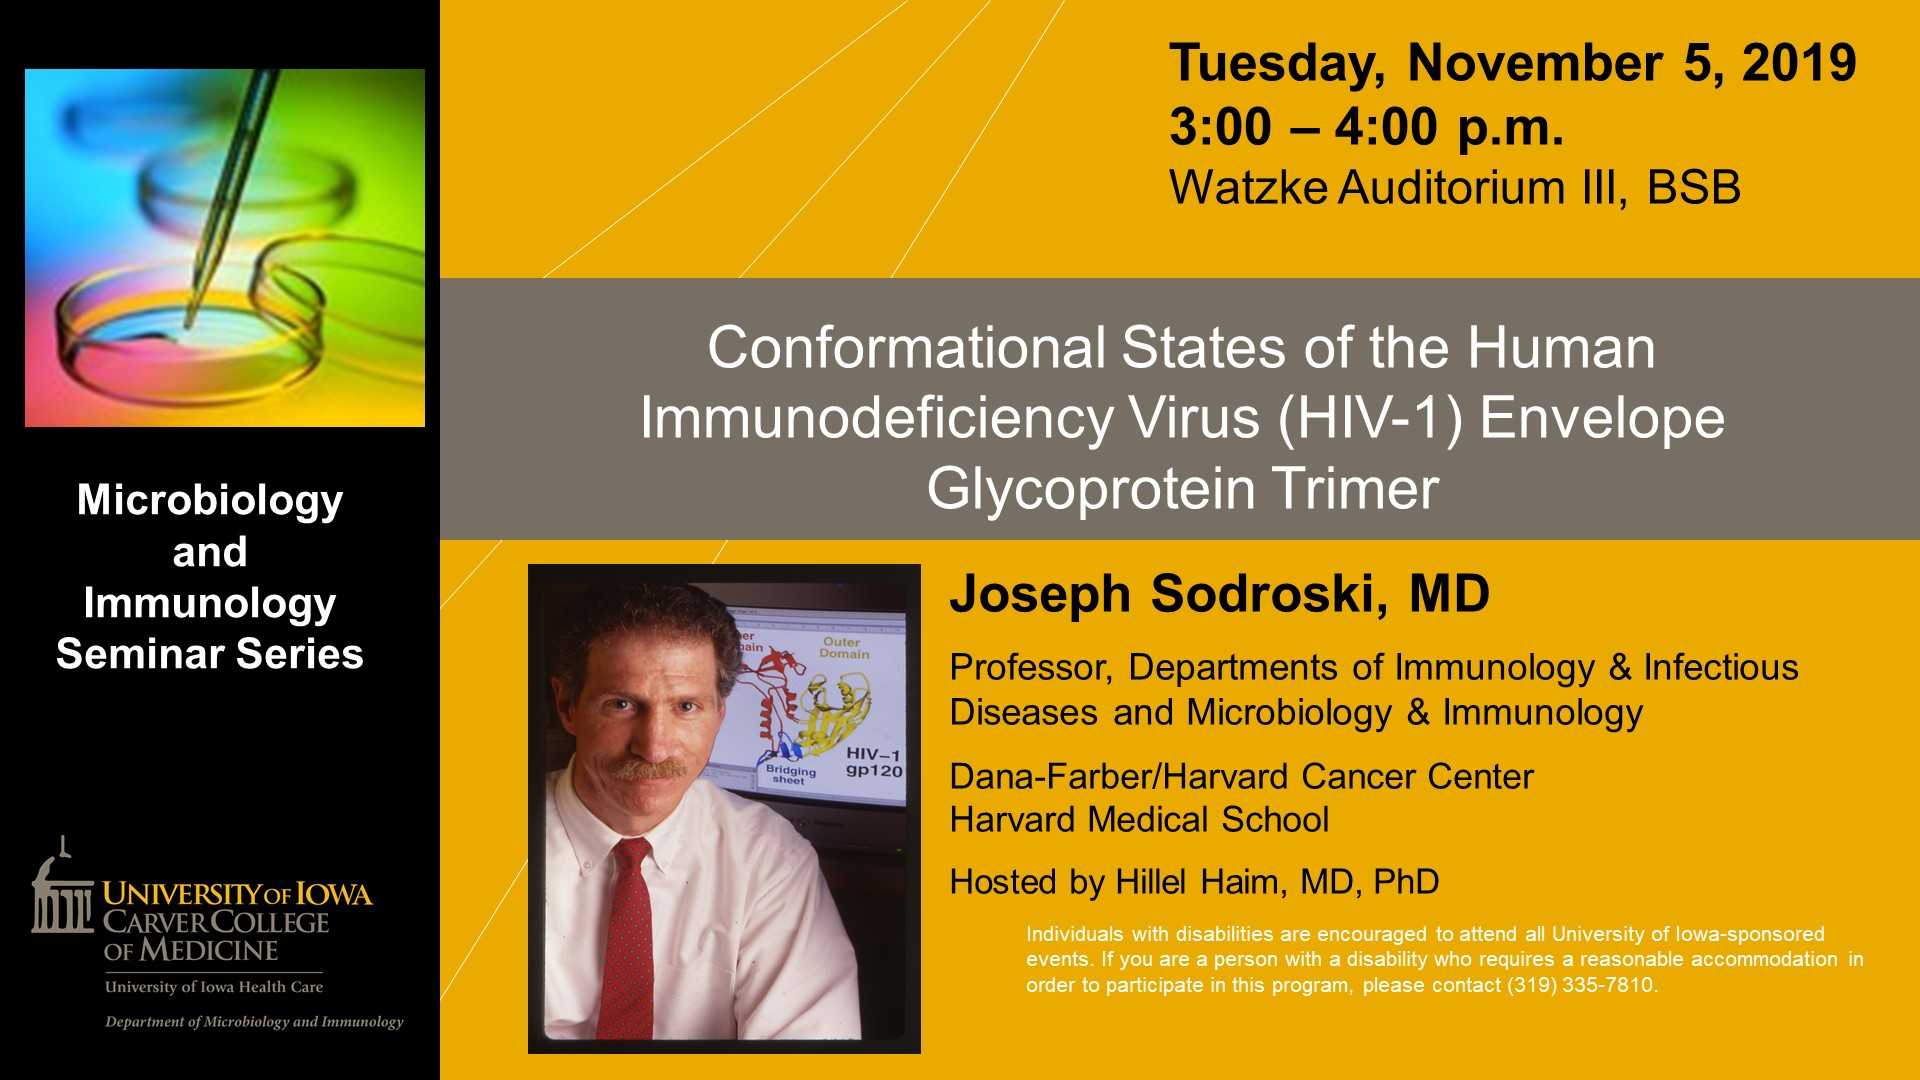 Microbiology and Immunology Seminar: Dr. Joseph Sodroski, MD promotional image